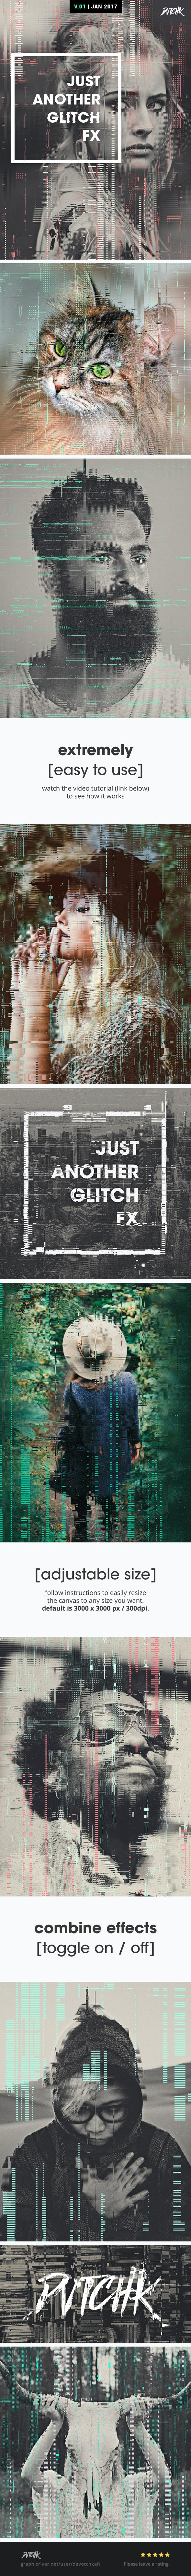 Just Another Glitch FX - Photo Effects Actions